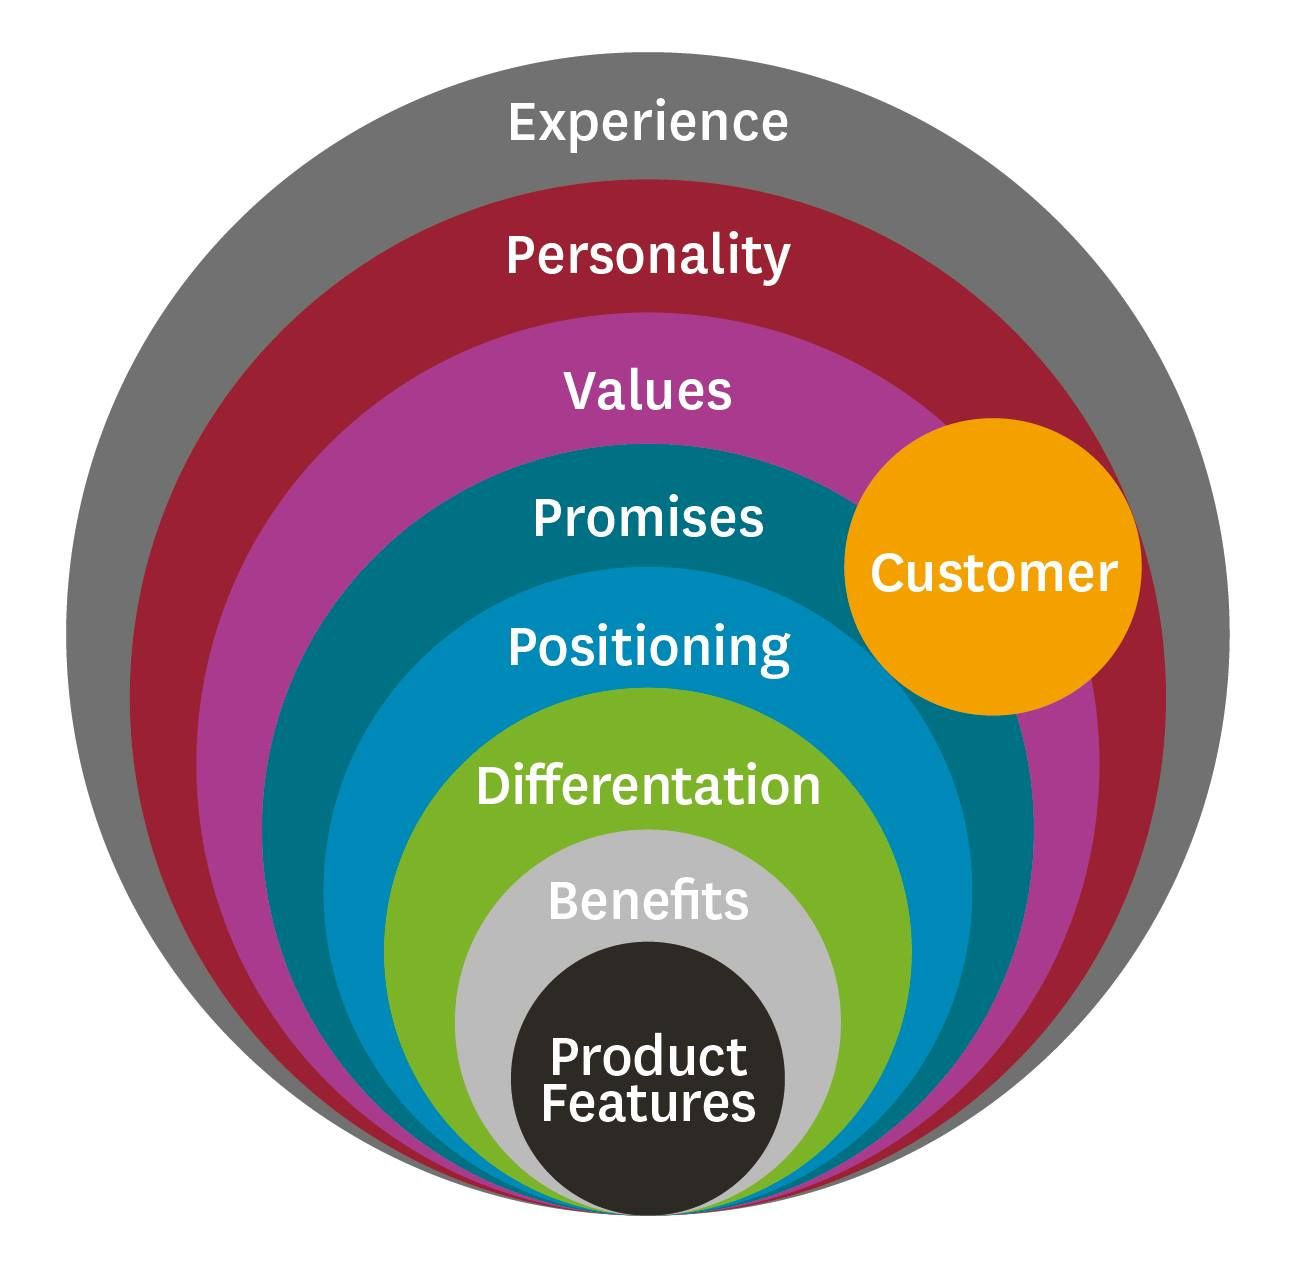 customer vs product brand strategy experience personality product brand strategy experience personality values promises